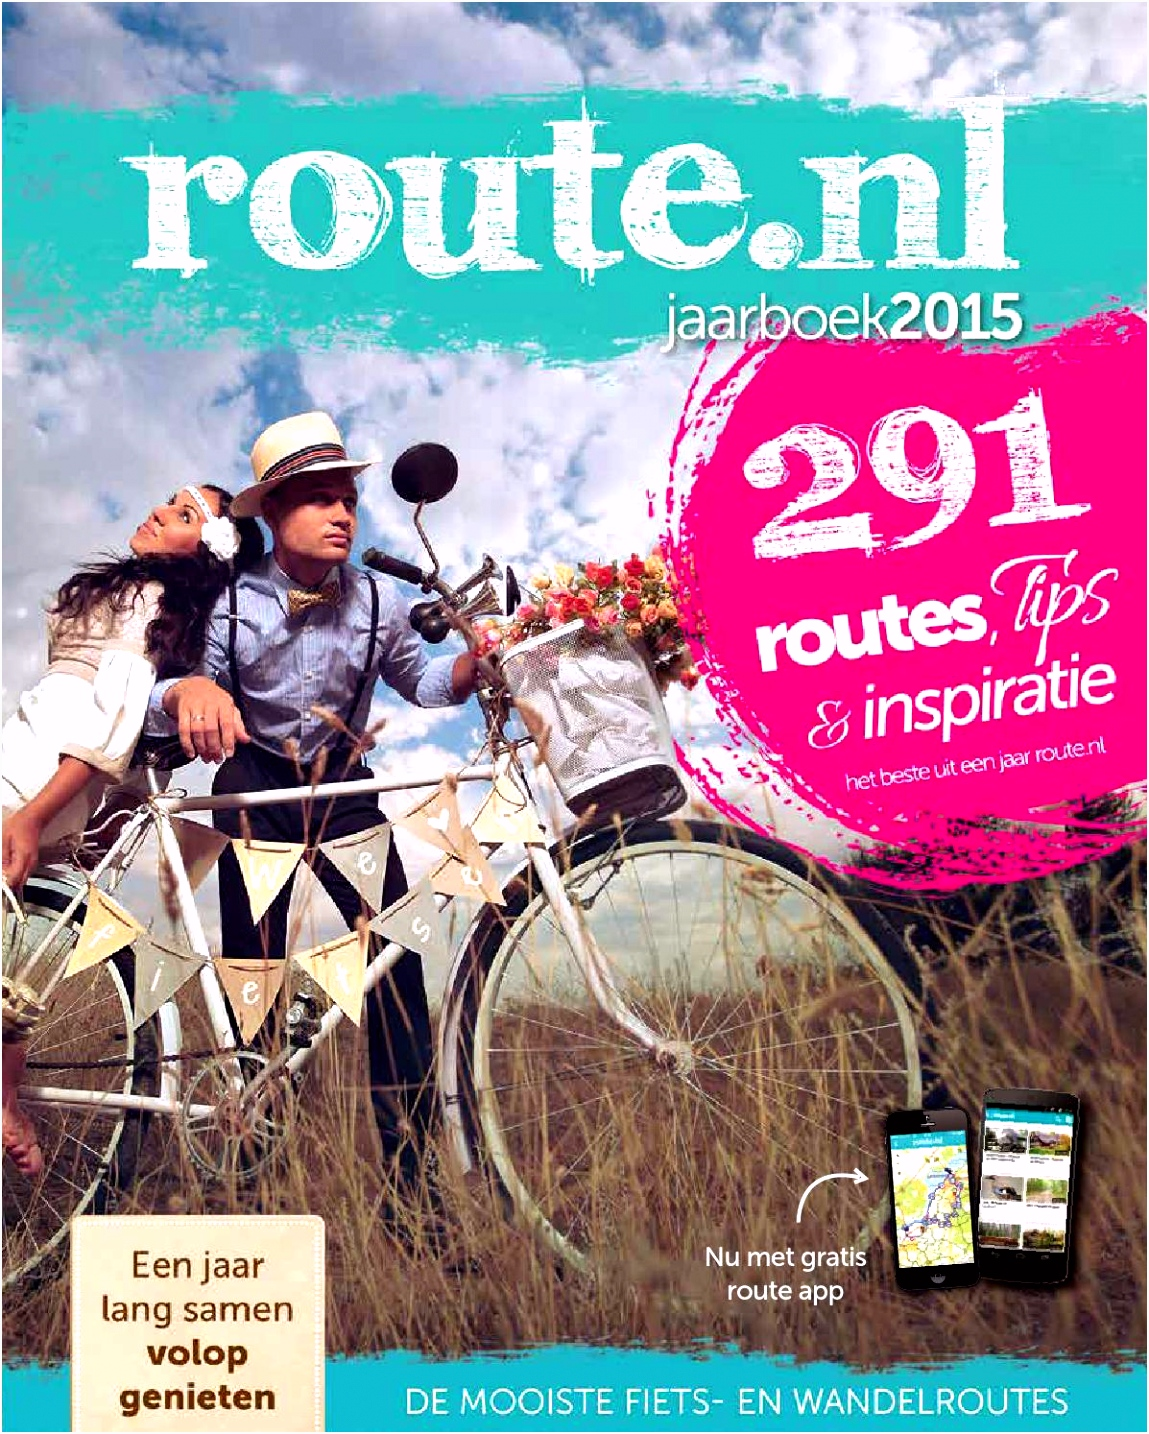 Route Jaarboek 2015 by Route issuu